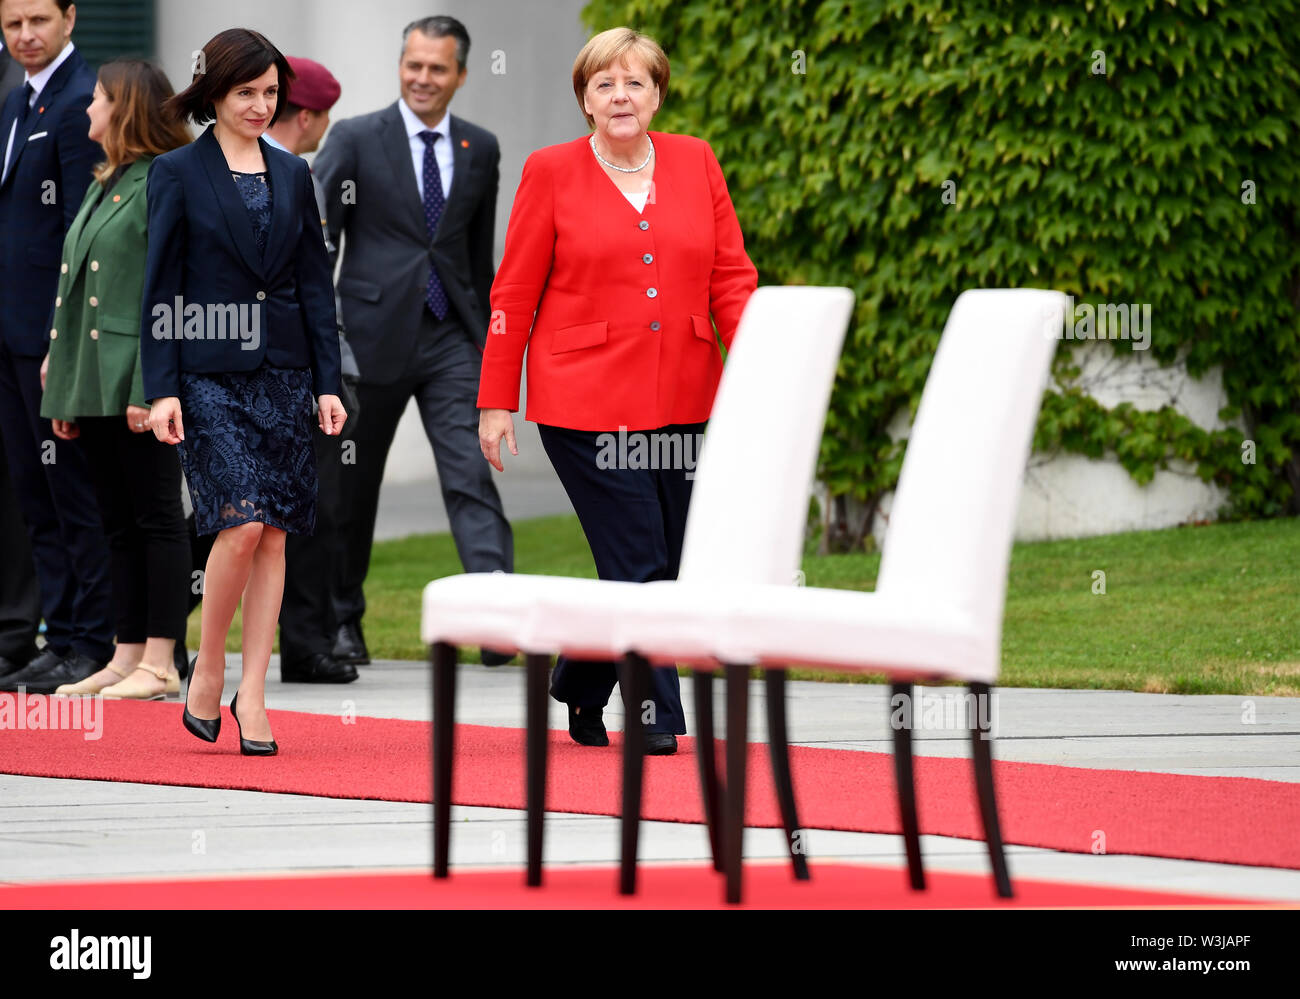 Berlin, Germany. 16th July, 2019. Federal Chancellor Angela Merkel (CDU, r) receives Moldovan Prime Minister Maia Sandu in the Federal Chancellery with military honours. After several tremors during public appearances such as this, Merkel performed the ceremony for the first time last week, partly sitting down. Credit: Britta Pedersen/dpa-Zentralbild/dpa/Alamy Live News - Stock Image